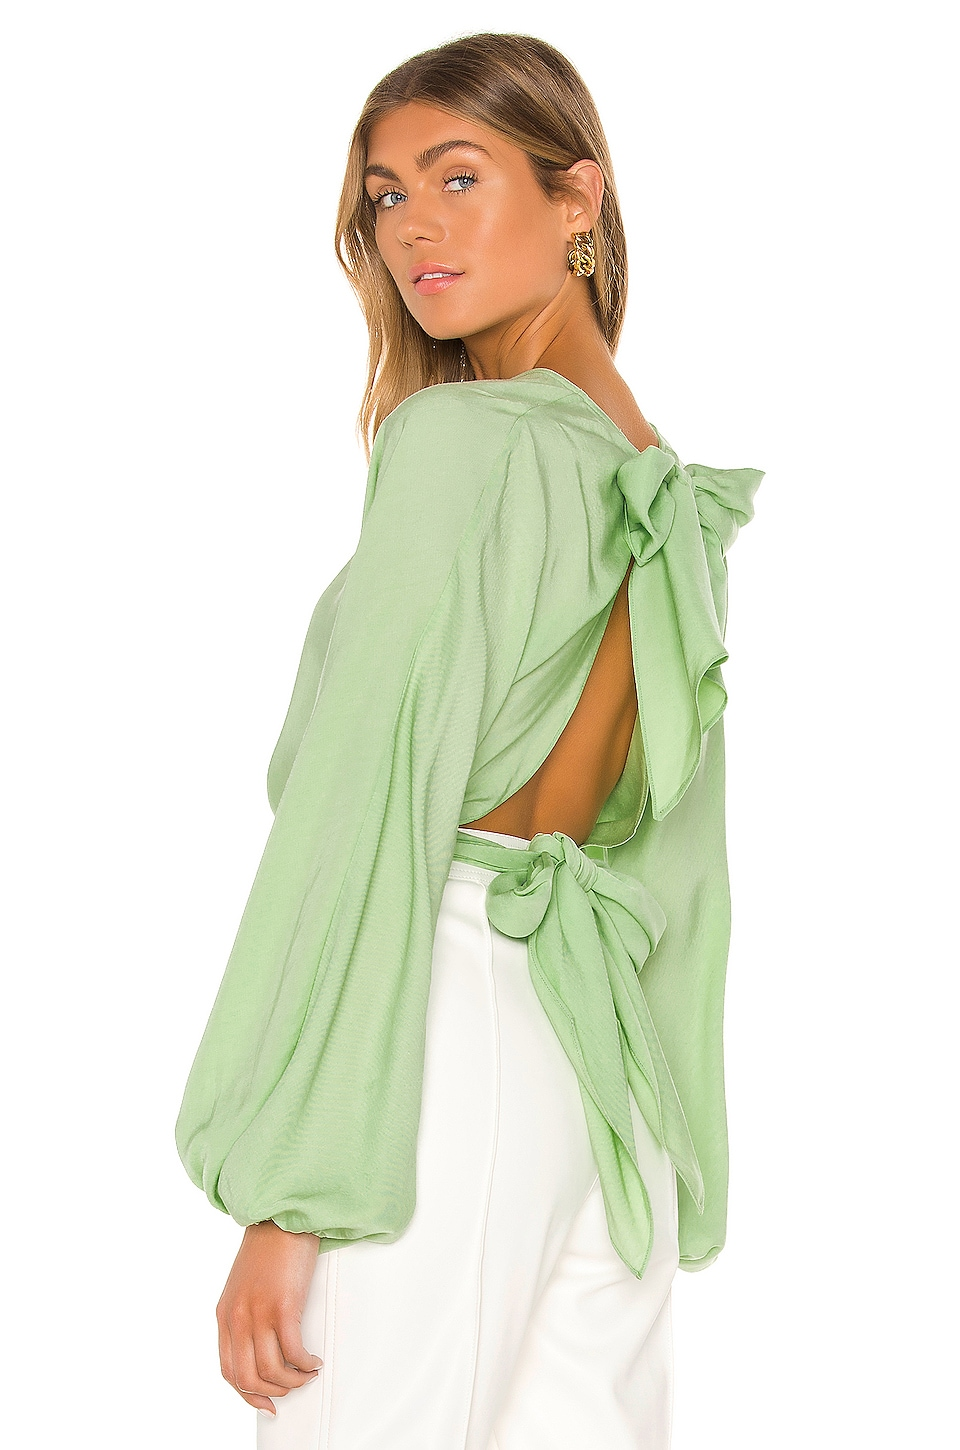 L'Academie The Dorothei Top in Nile Green